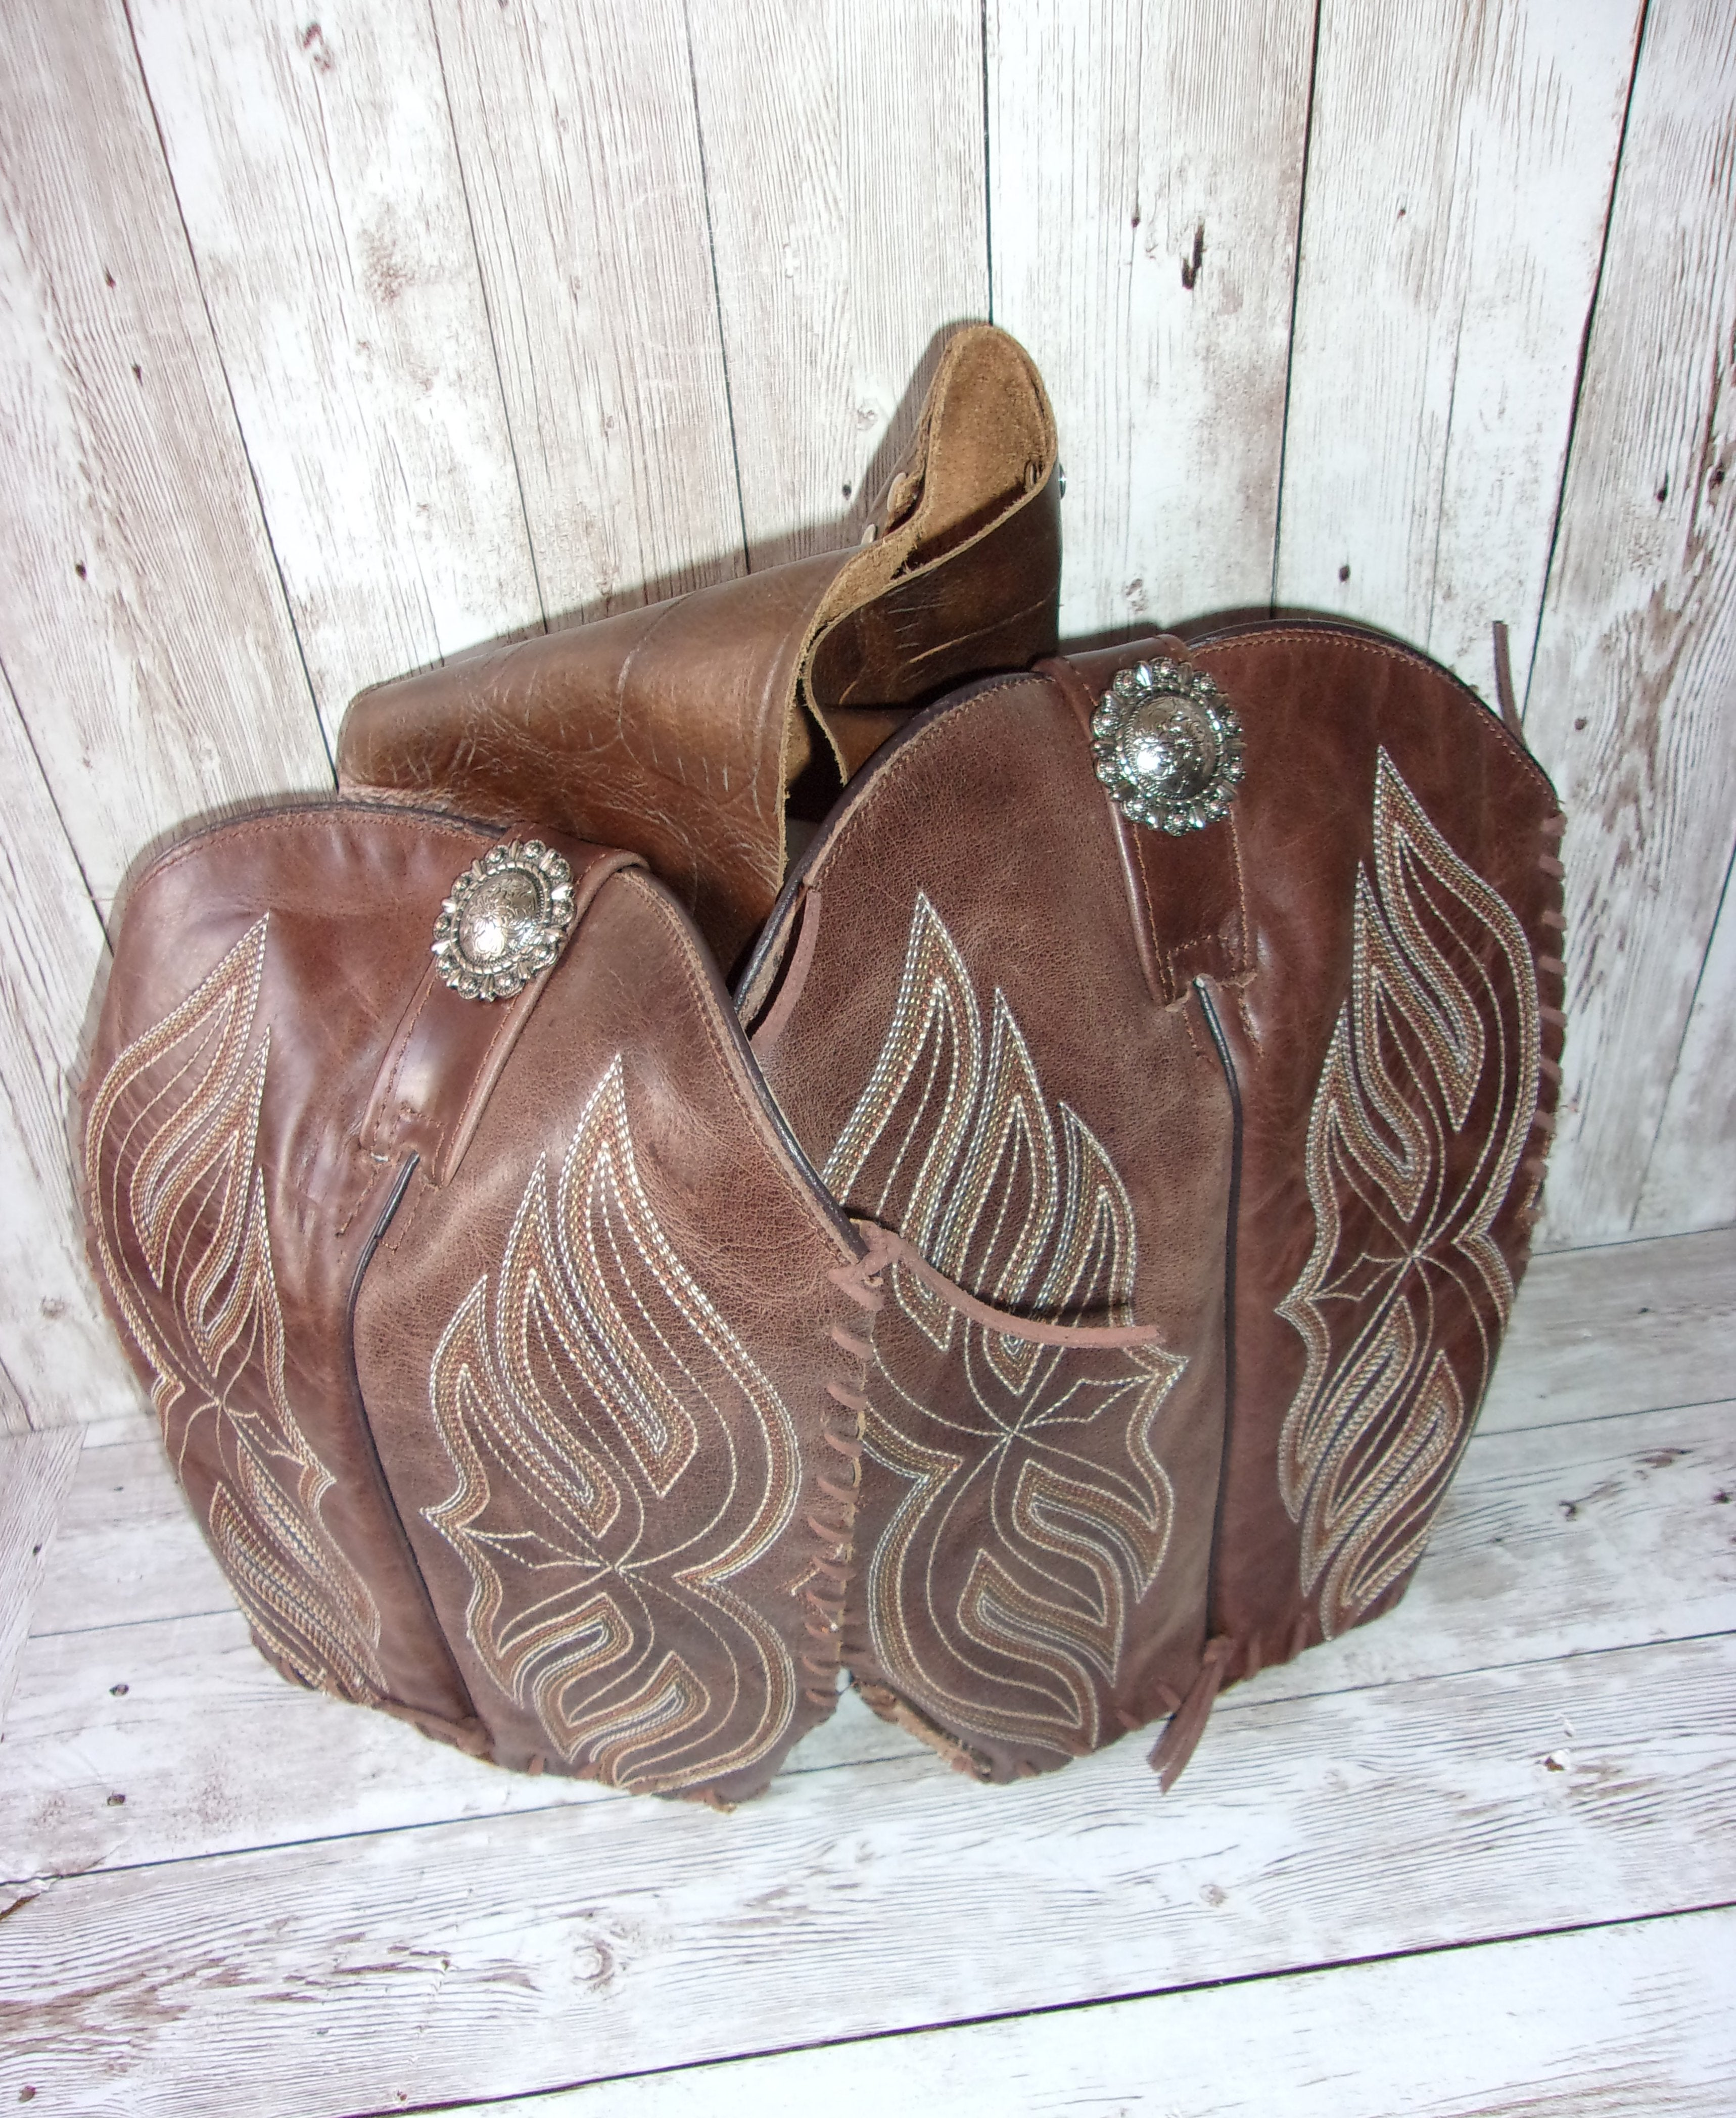 Leather Doggy Saddle Bag pup05 - Distinctive Western Handbags, Purses and Totes